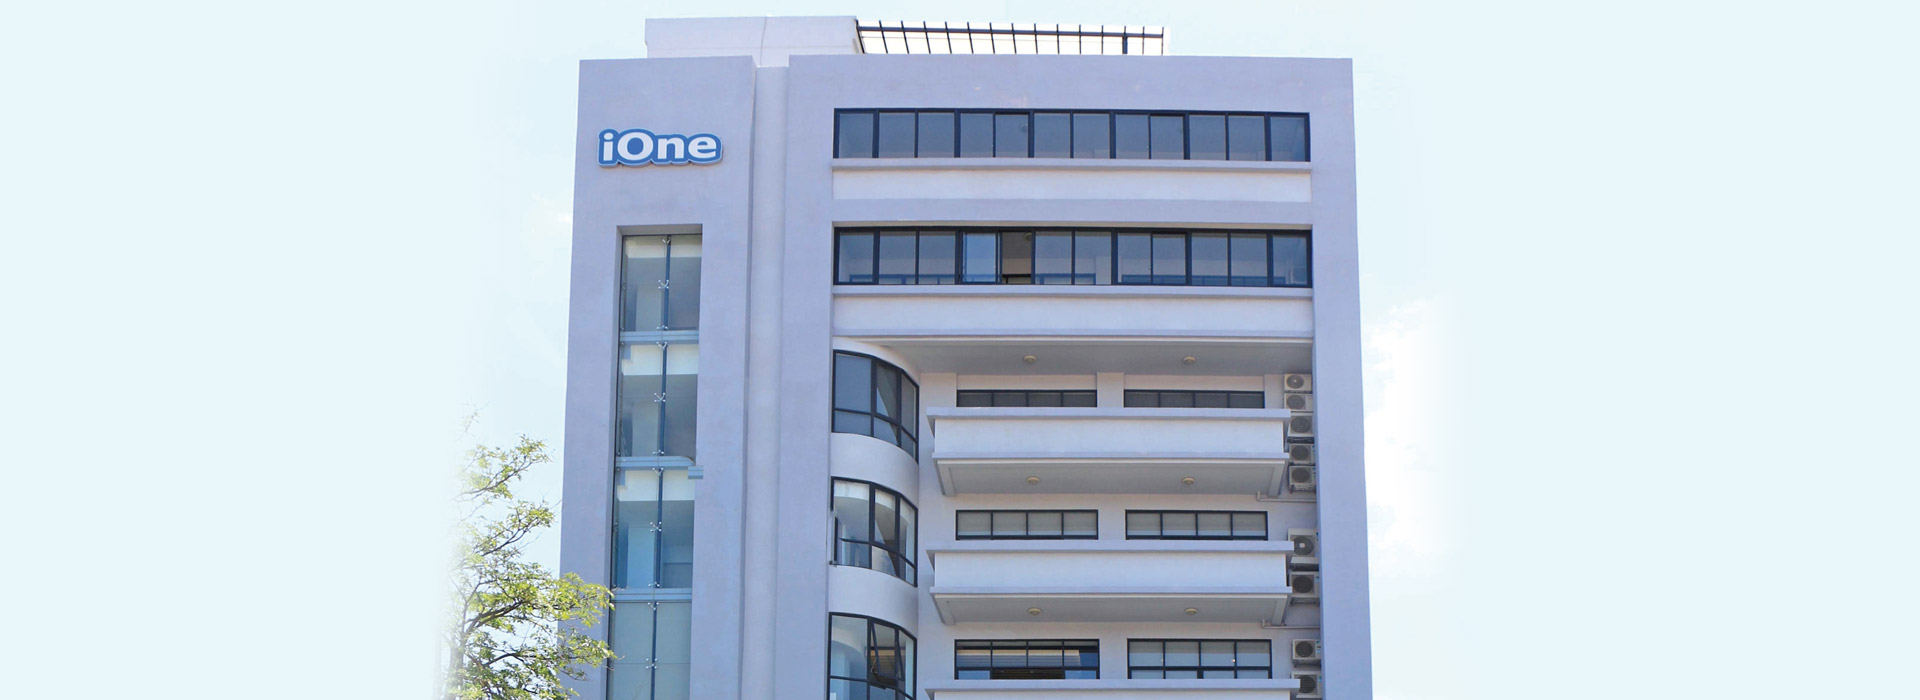 iOne Building in Phnom Penh